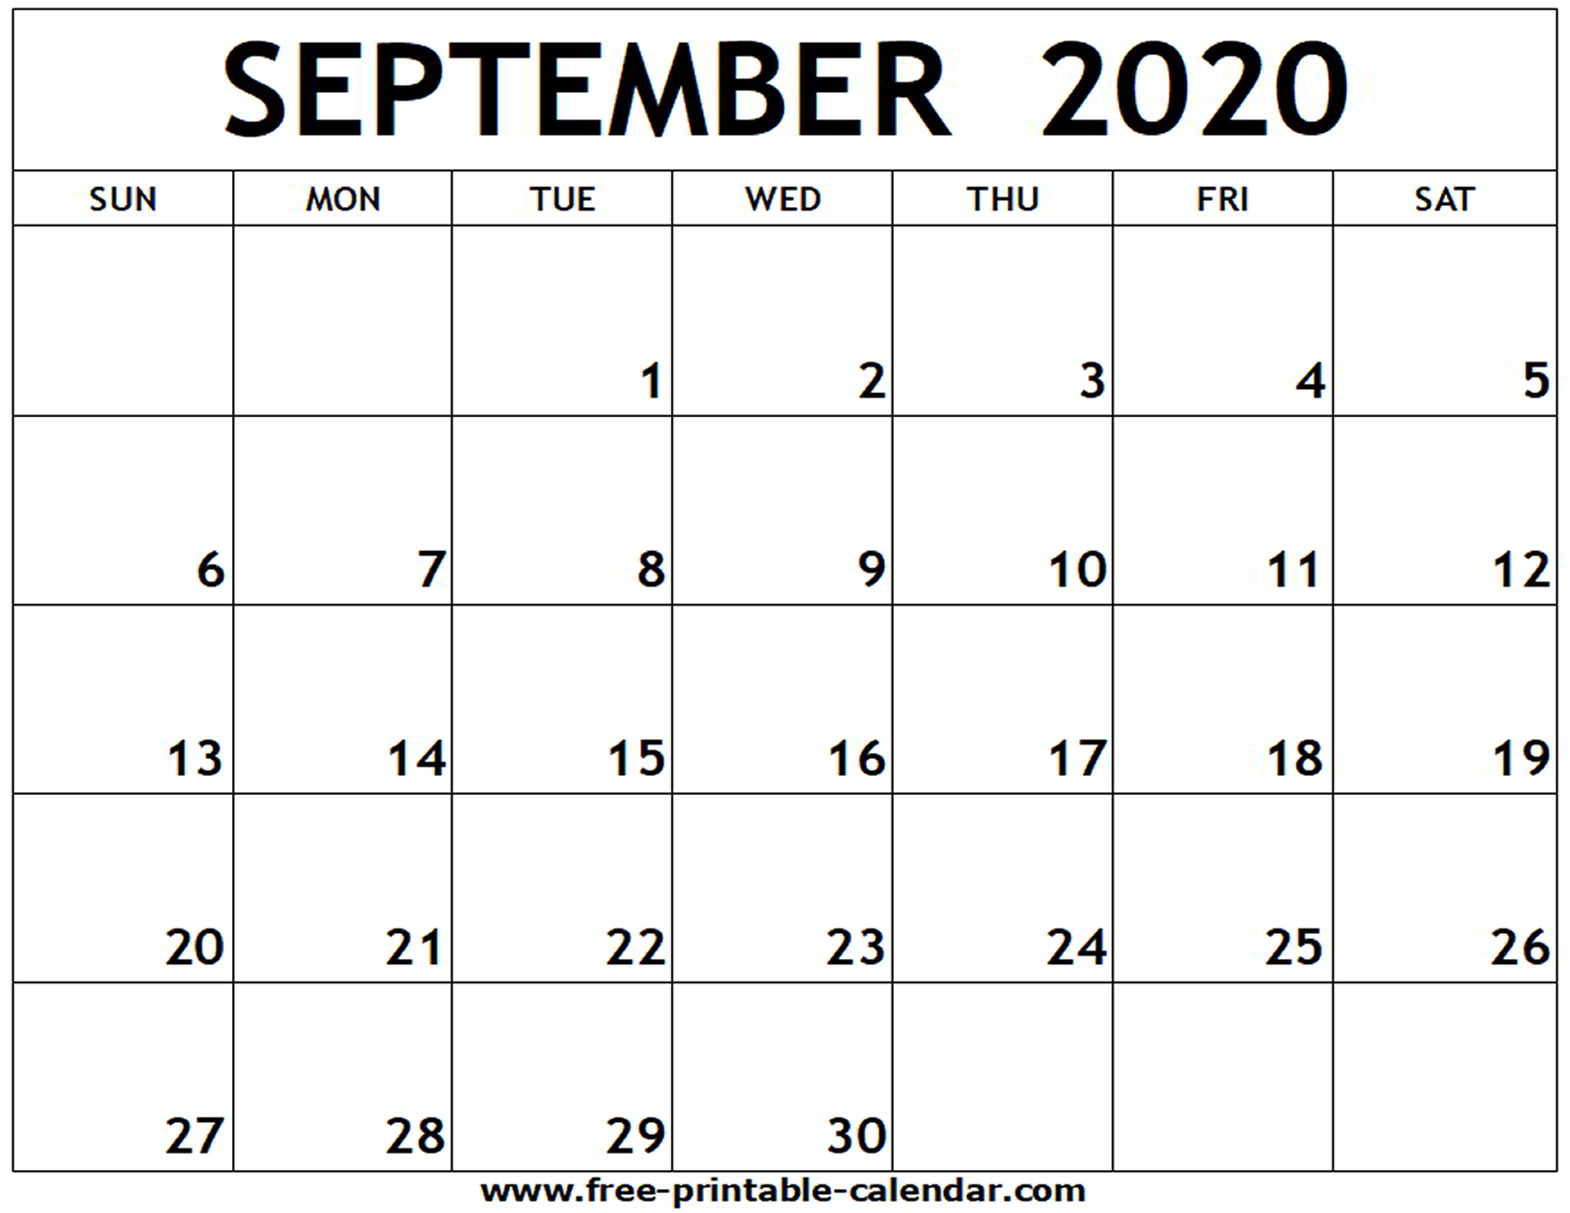 Printable Calendars September 2020 - Wpa.wpart.co